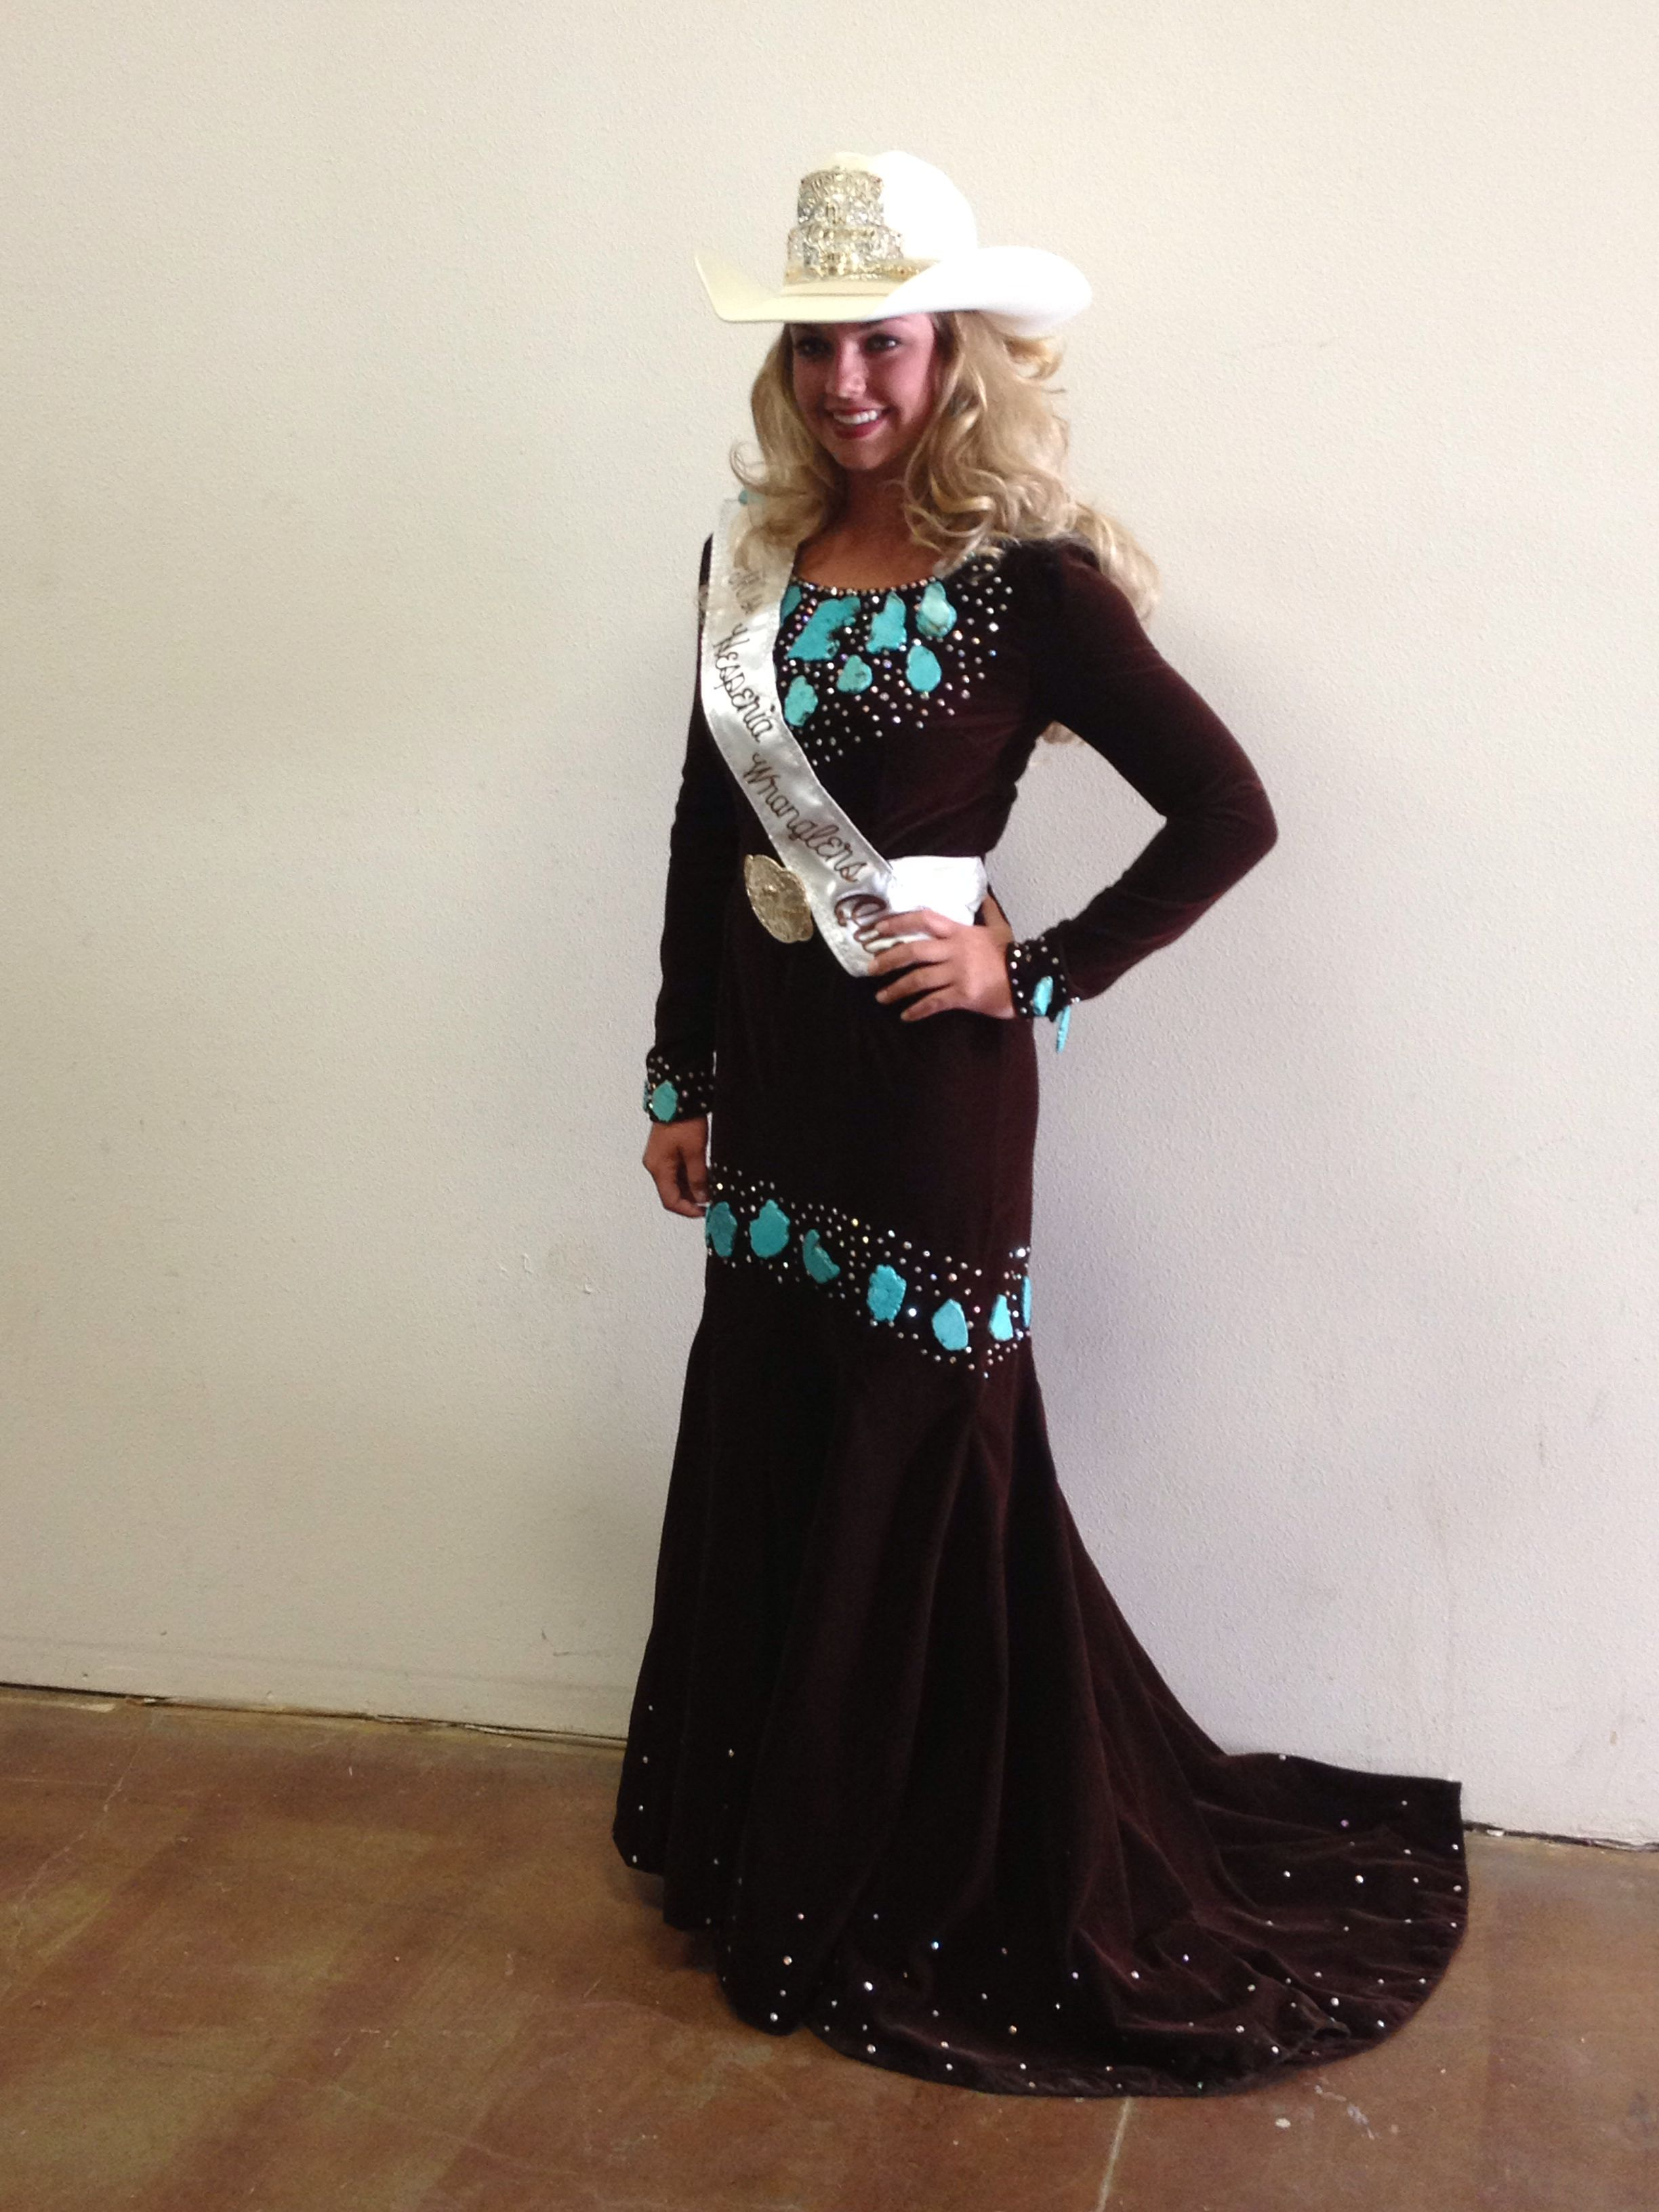 Brown Velvet Dress With Turquoise Colored Howlite Stones How Bout Them Cows Queen Outfit